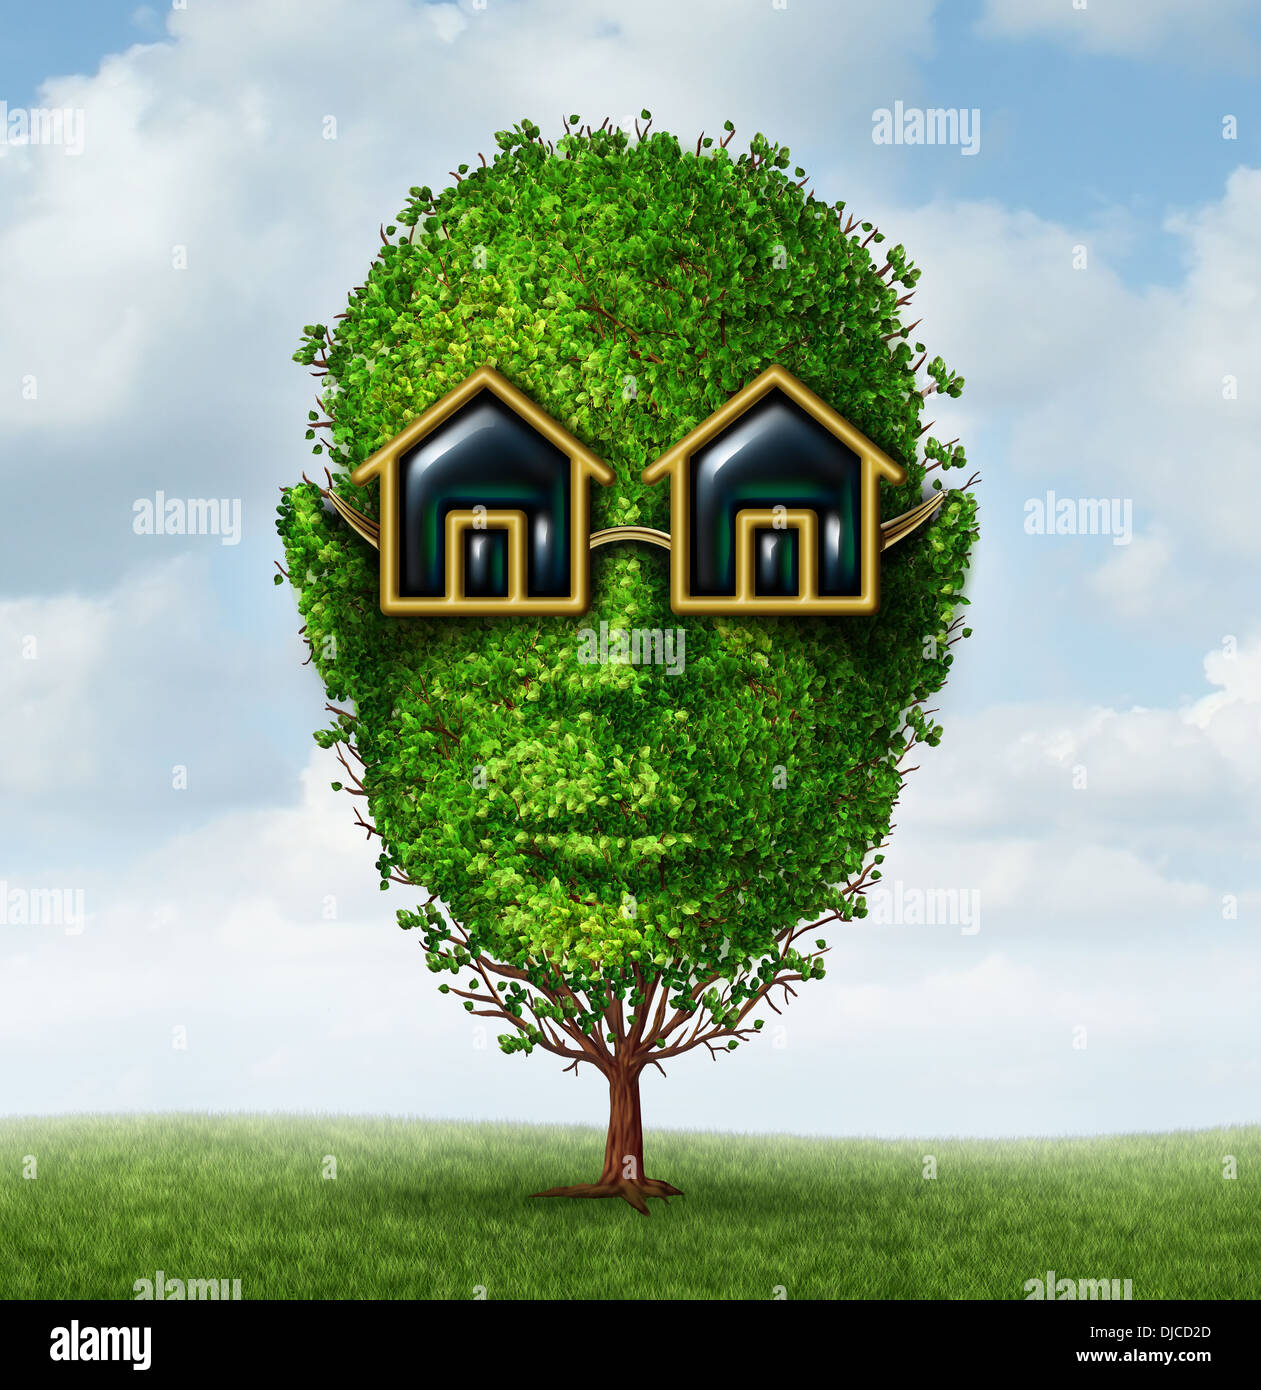 Real Estate Planning Concept As A Green Tree Shaped As A Human Head